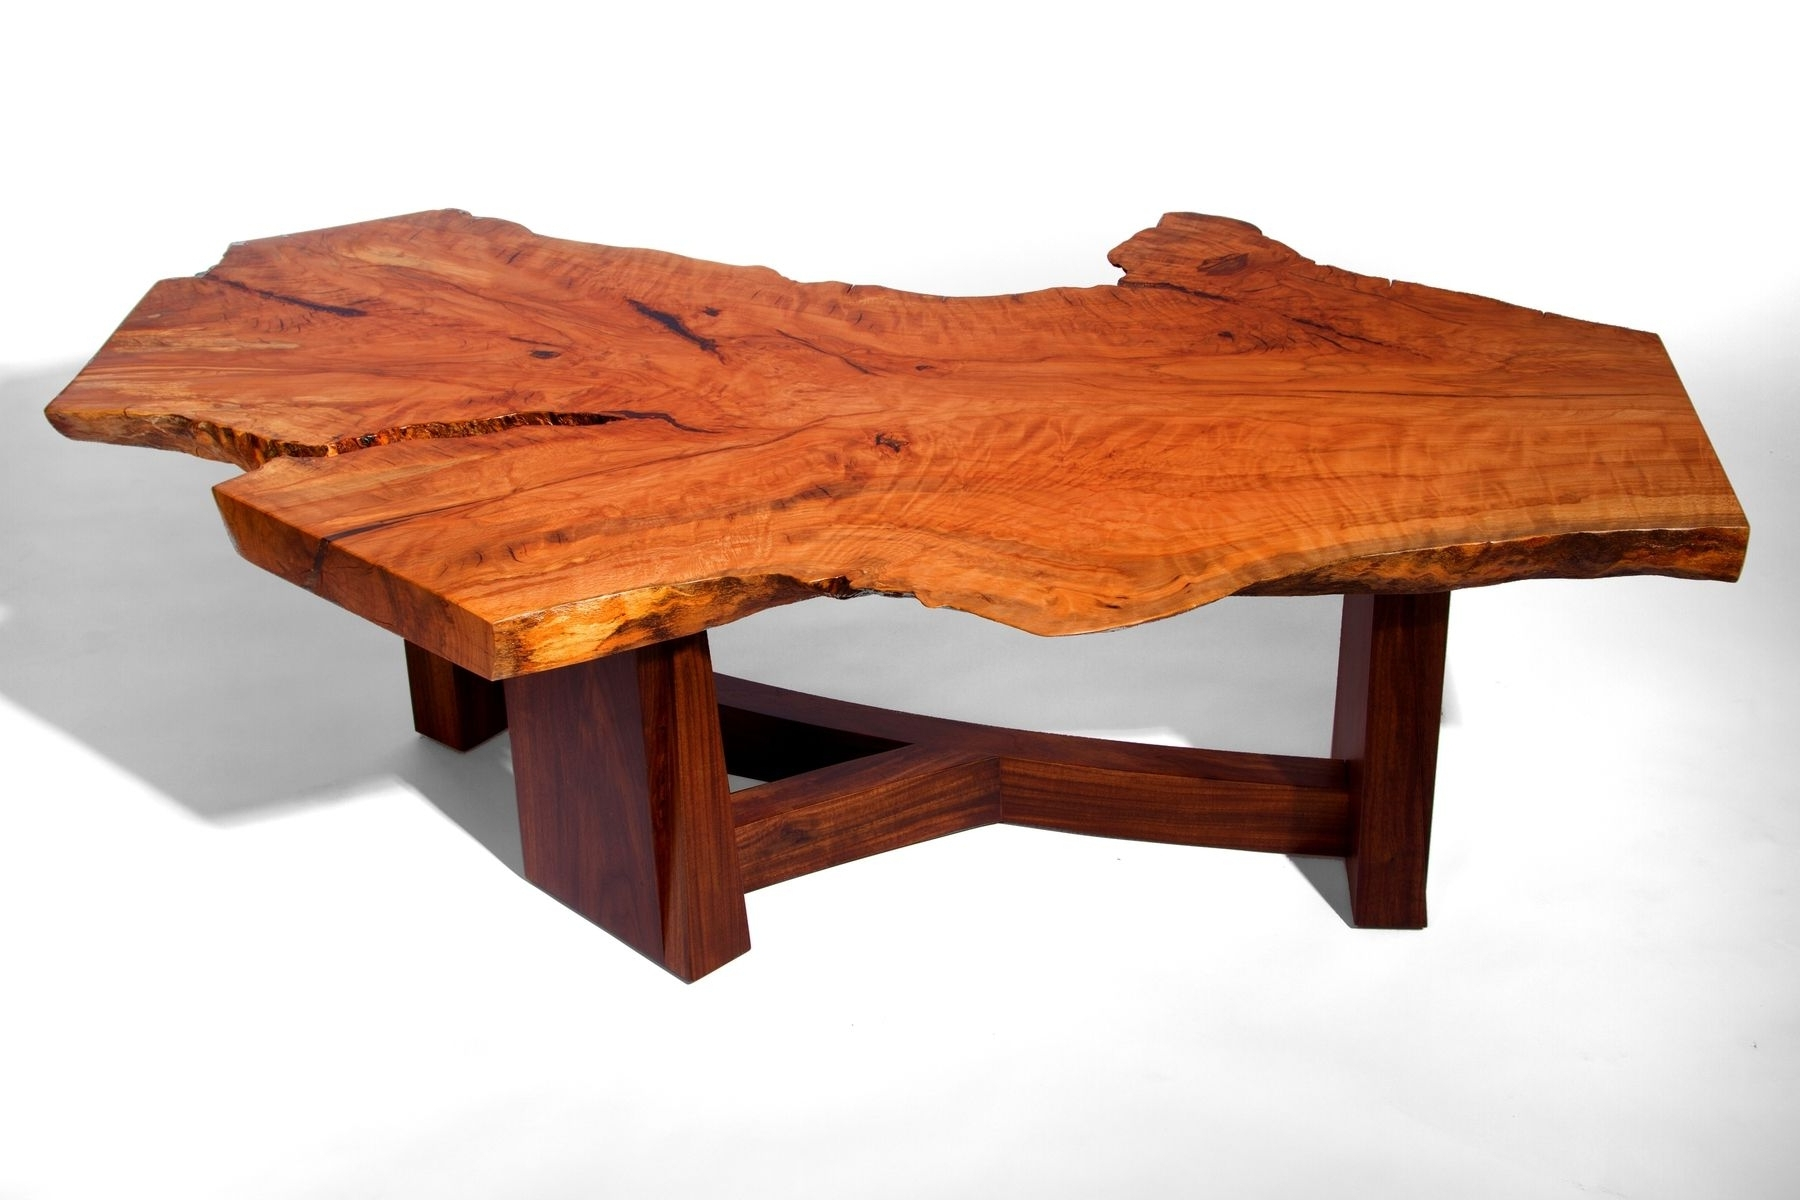 14 Live Edge Coffee Table For Sale Collections (View 16 of 20)